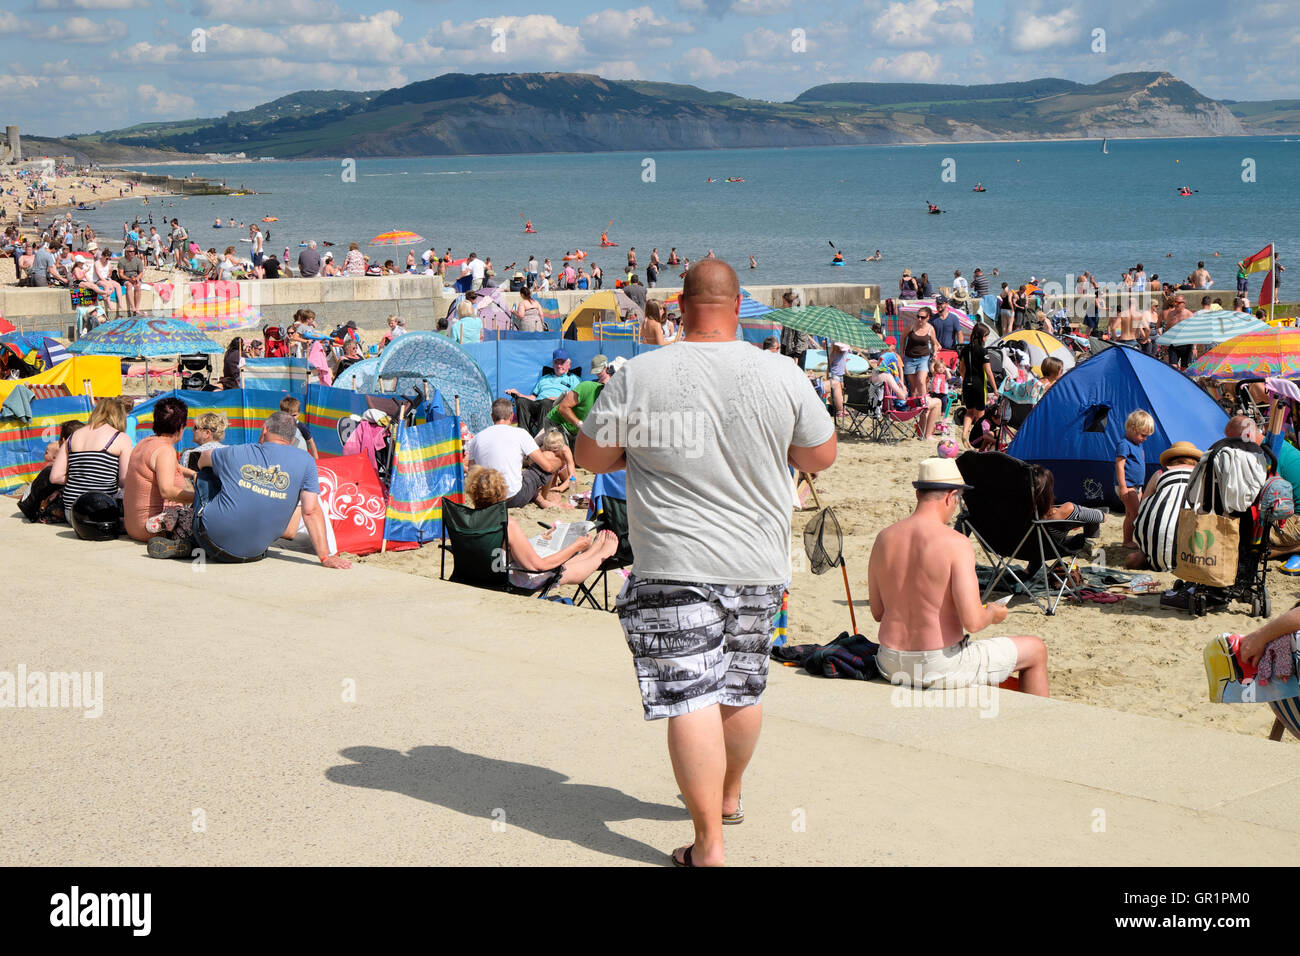 Crowd of people on the seafront beach at Lyme Regis, Dorset, England UK  KATHY DEWITT - Stock Image